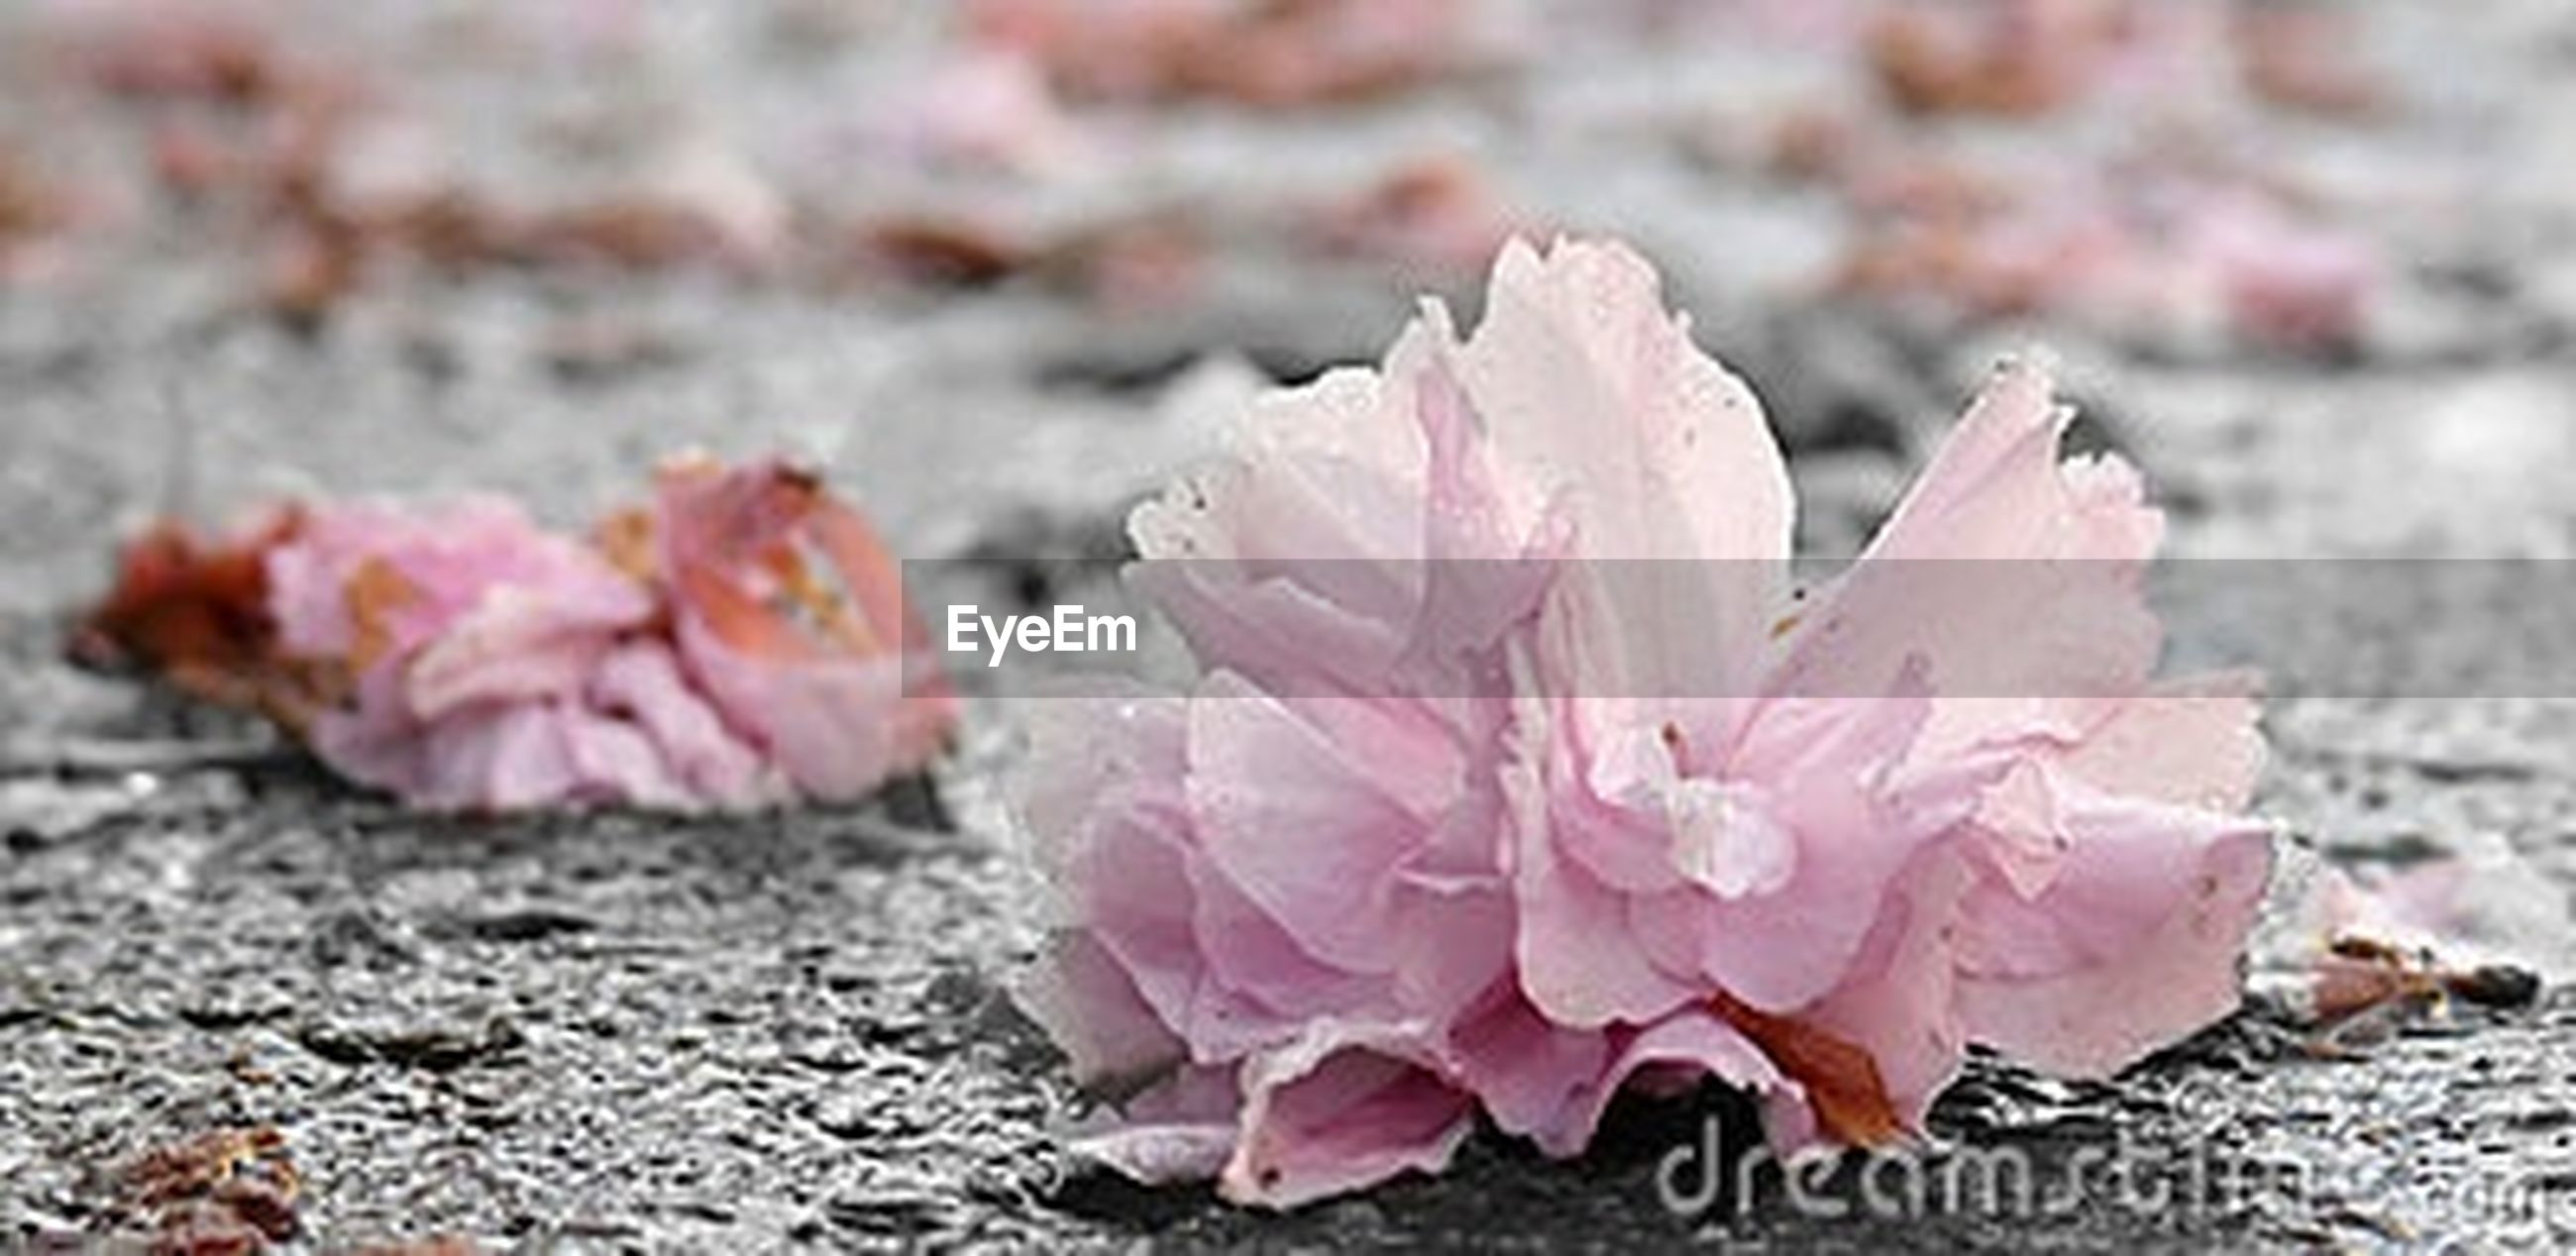 flower, petal, fragility, flower head, freshness, close-up, focus on foreground, beauty in nature, nature, pink color, growth, blooming, plant, leaf, high angle view, day, outdoors, in bloom, field, season